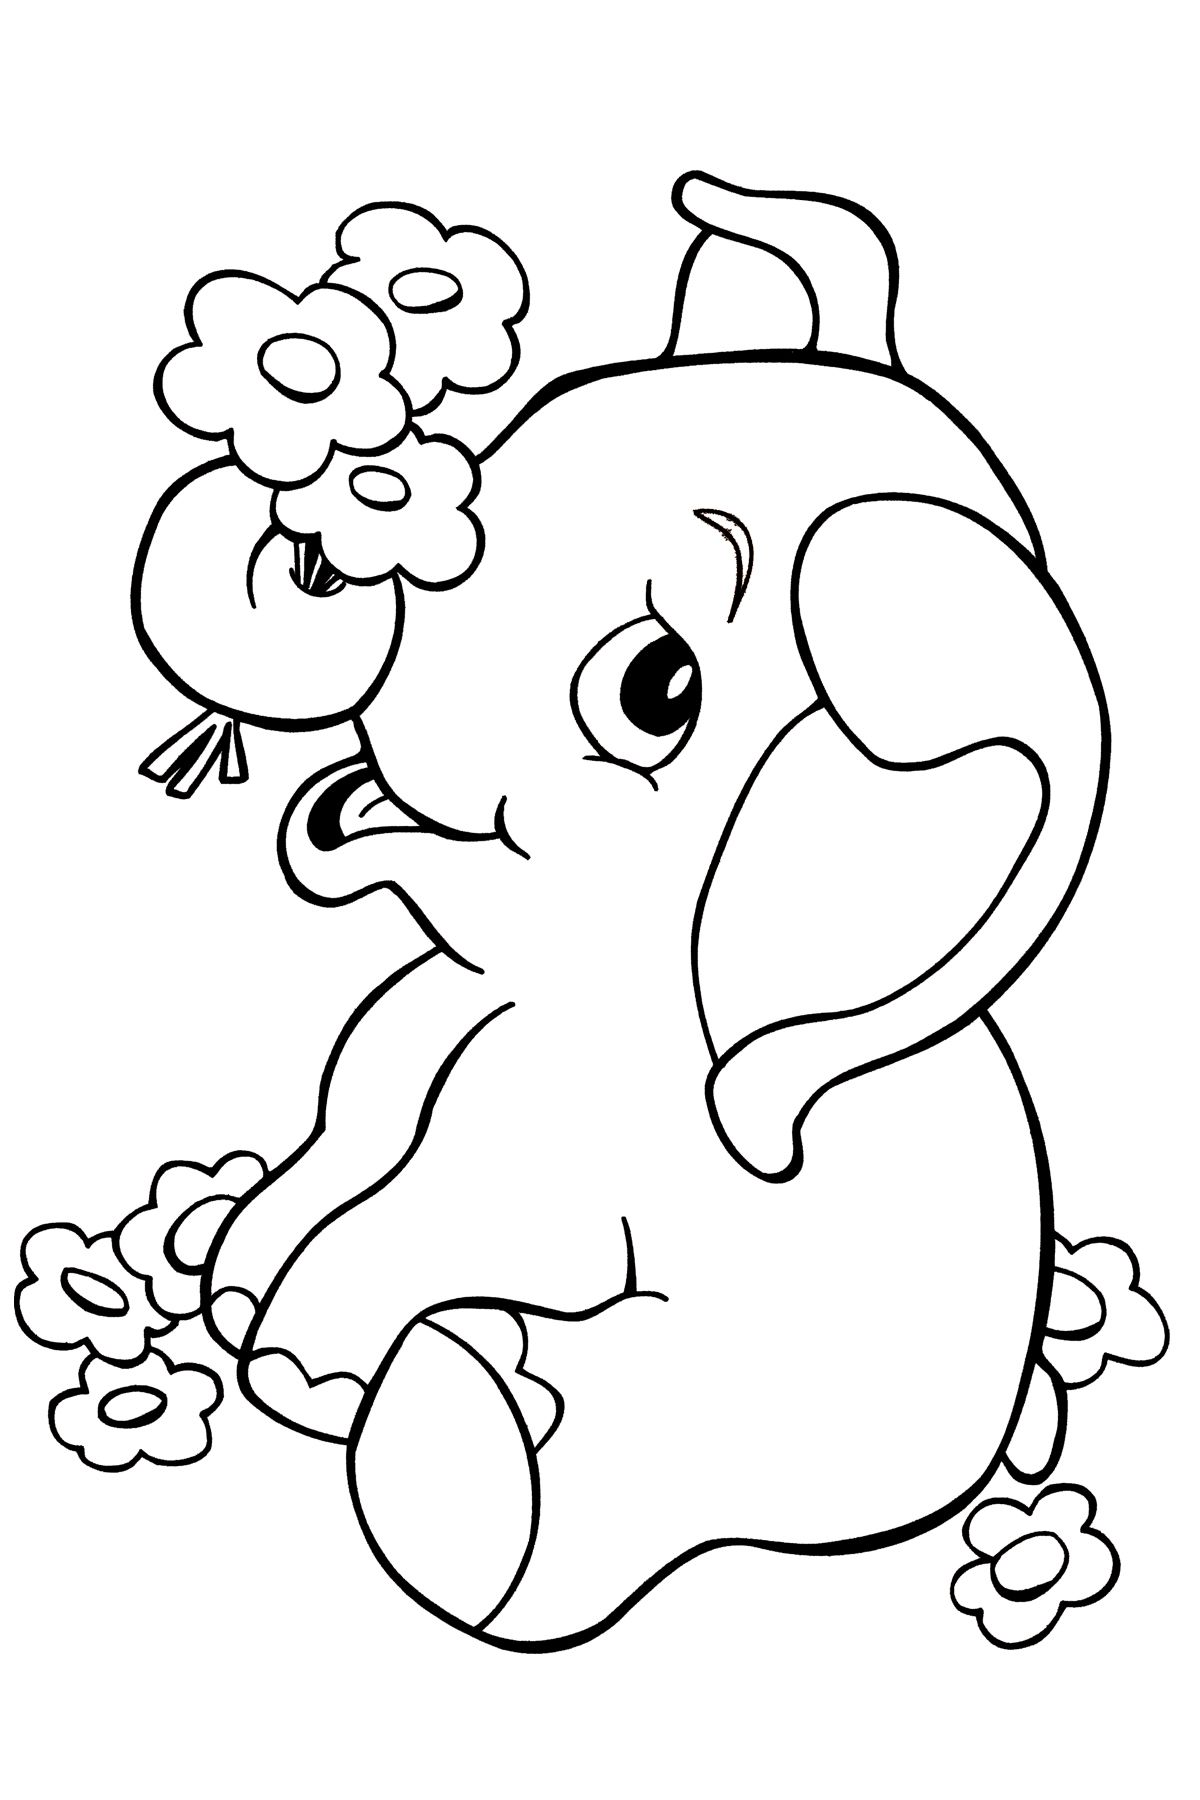 image relating to Elephant Coloring Pages Printable known as elephant line artwork - Google Glance sewing commitment